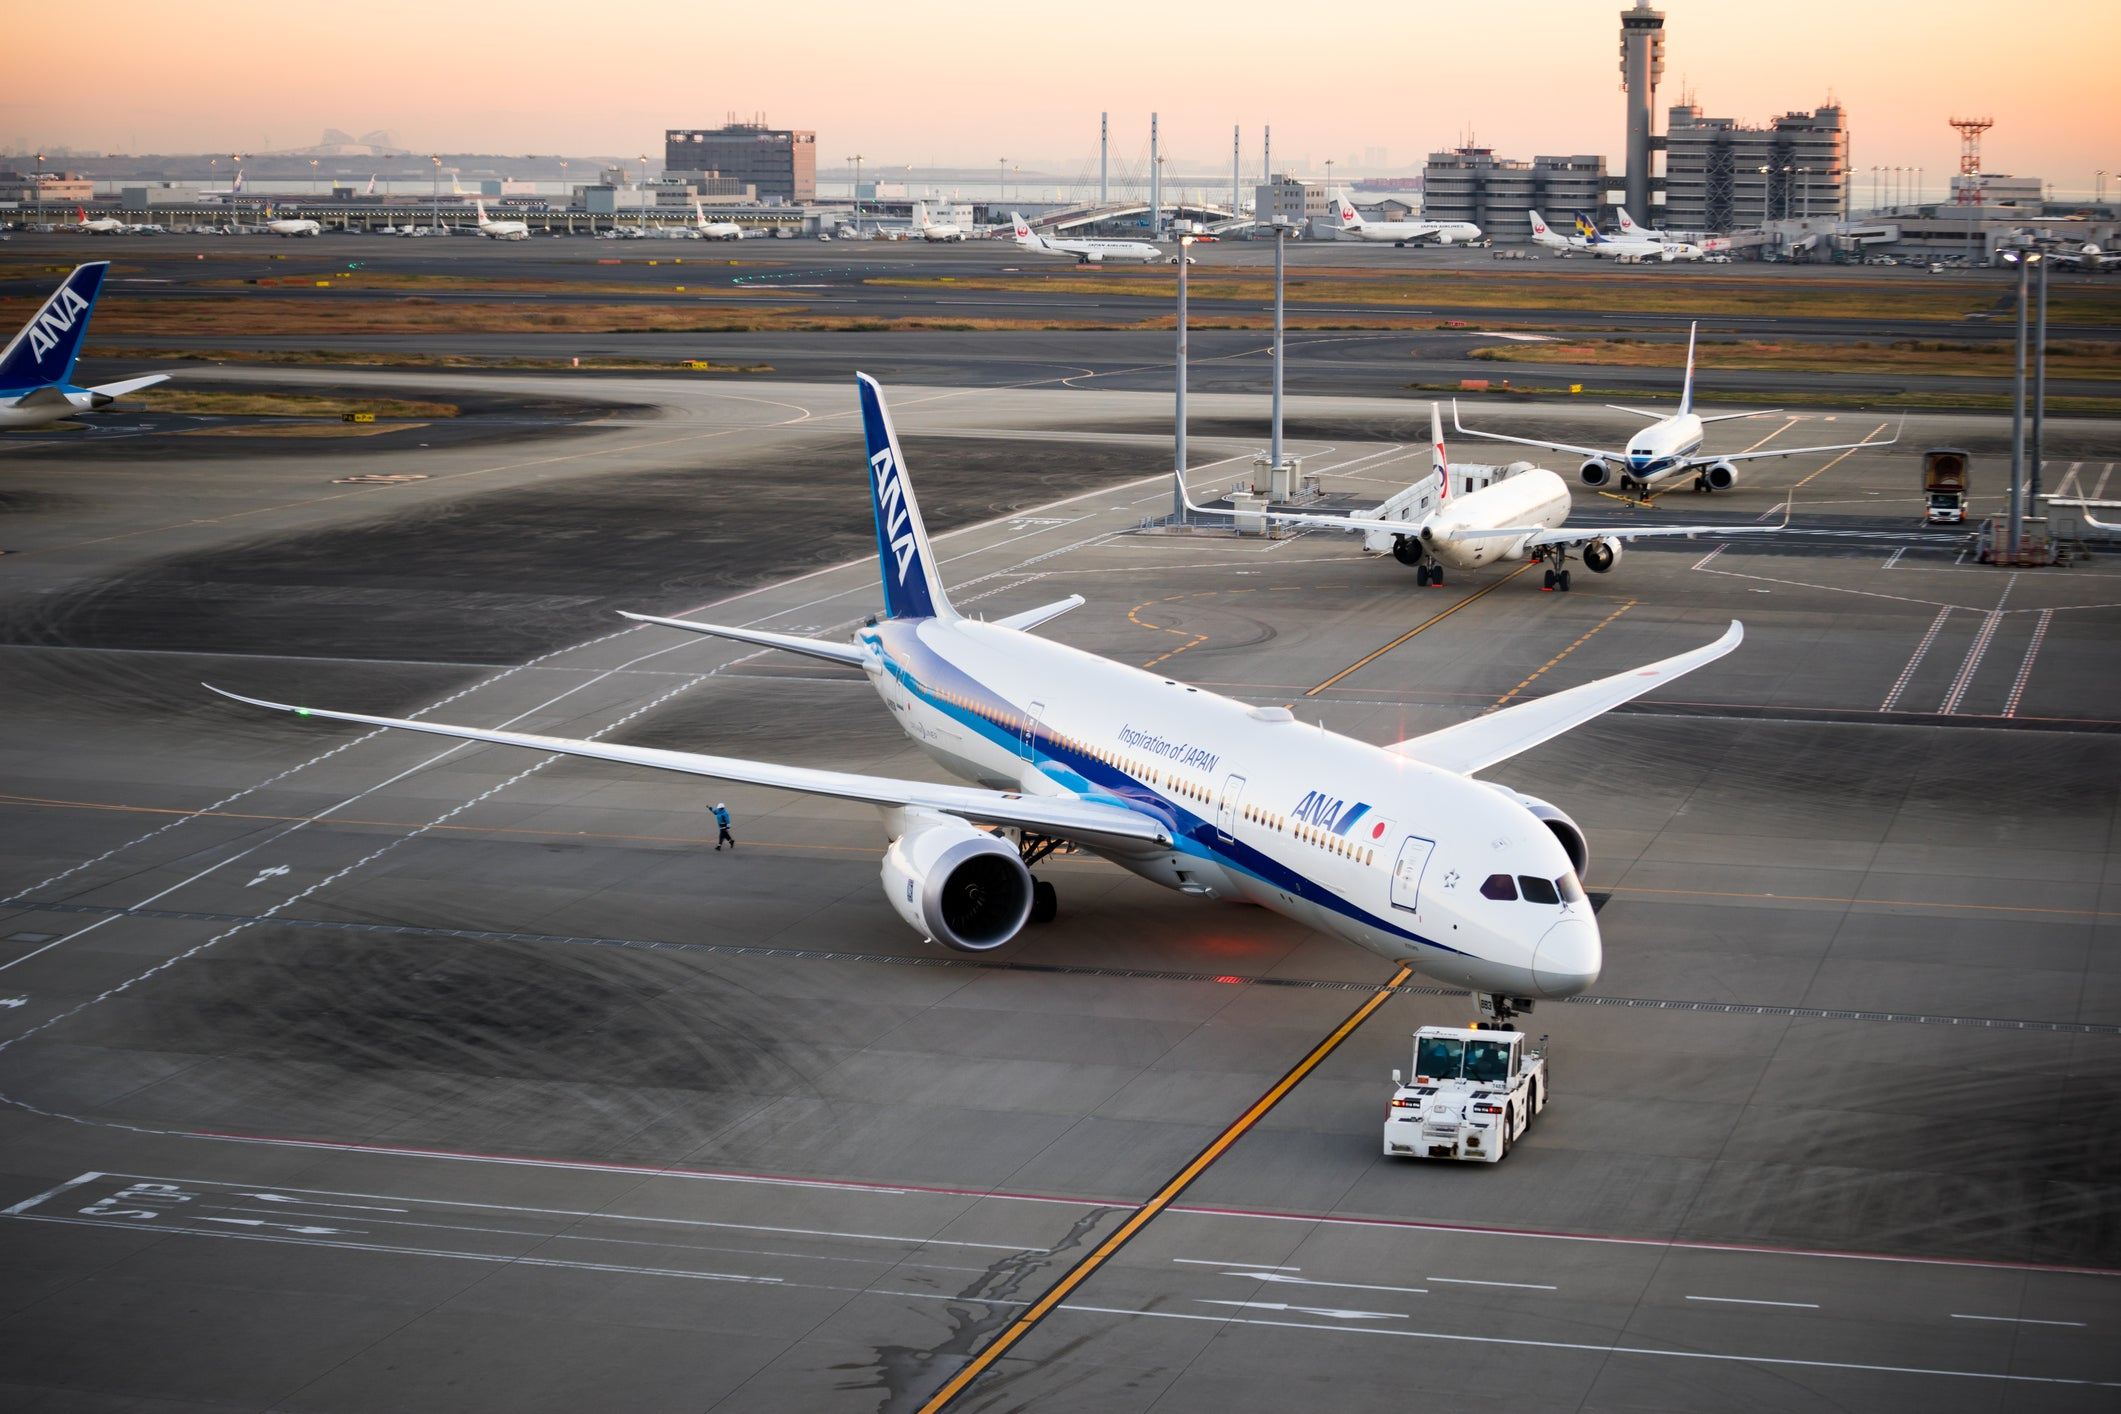 3. All Nippon Airways